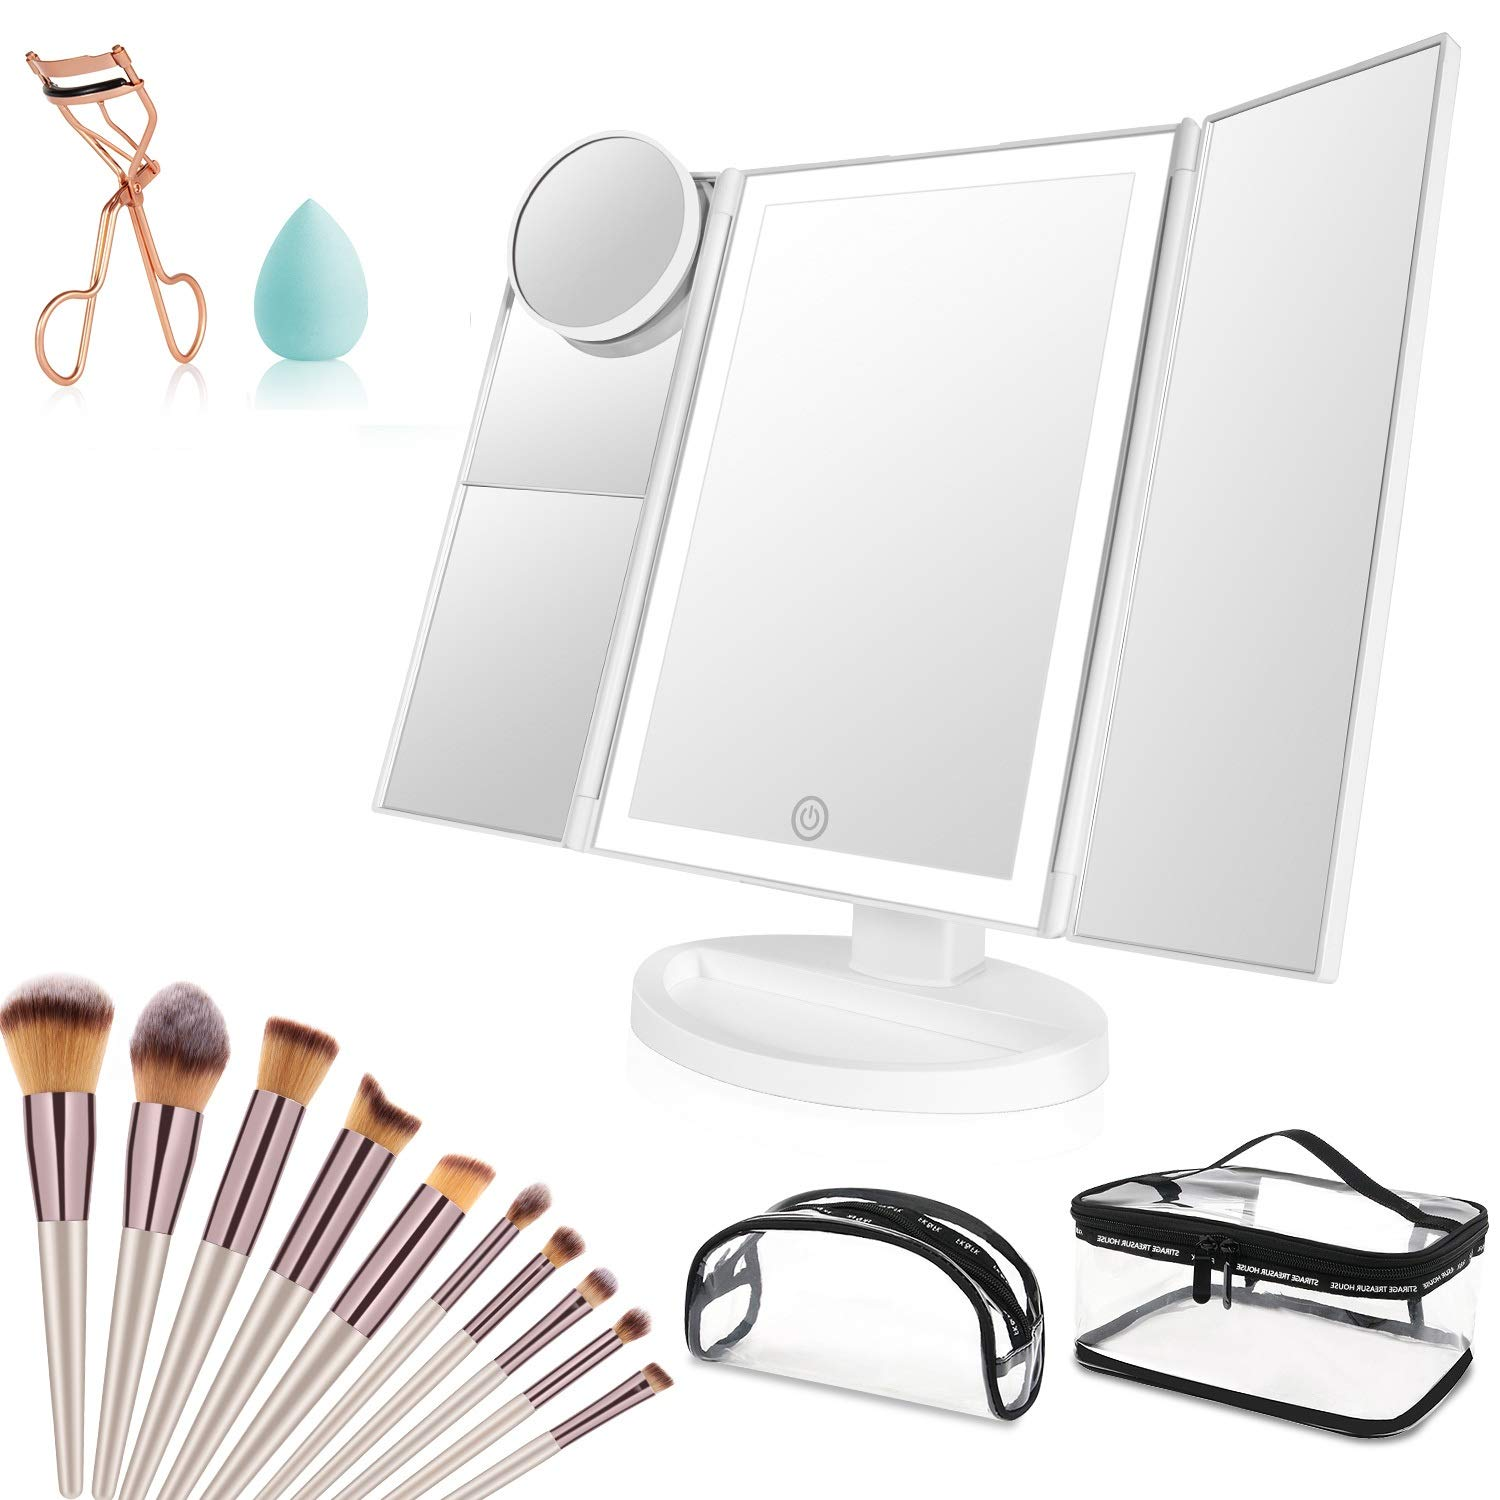 Makeup Vanity Mirror with Lights, 36 LED Trifold Cosmetic Makeup Mirror, 2x 3x 10x Magnification 180° Rotation Dual Power Supply 10 Makeup Brushes Set 1 Makeup Sponges 2 Cosmetic Bags 1 Eyelash Curler